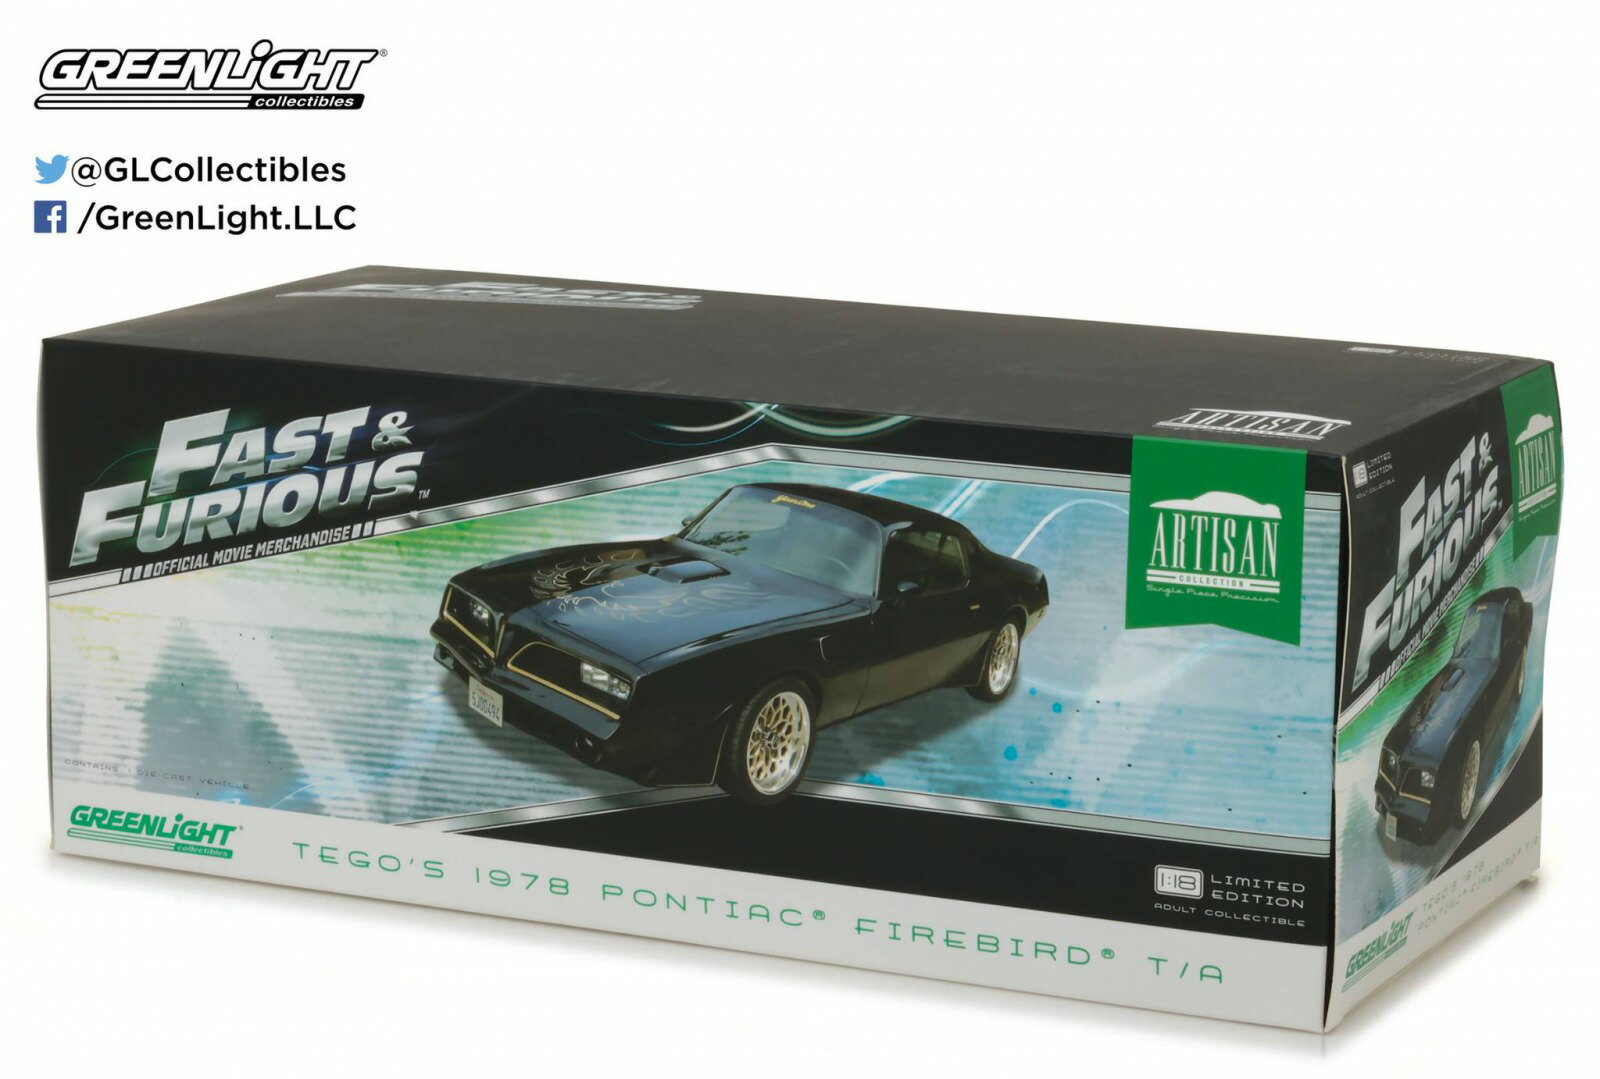 "Greenlight グリーンライト 1:18 1978年モデル ポンティアック トランザム 2009年映画「ワイルドスピード MAX」Tego's 1978 Pontiac Firebird Trans Am ""Fast & Furious"" (2009) Movie Artisan Collection 1/18 Diecast Model Car by Greenlight"